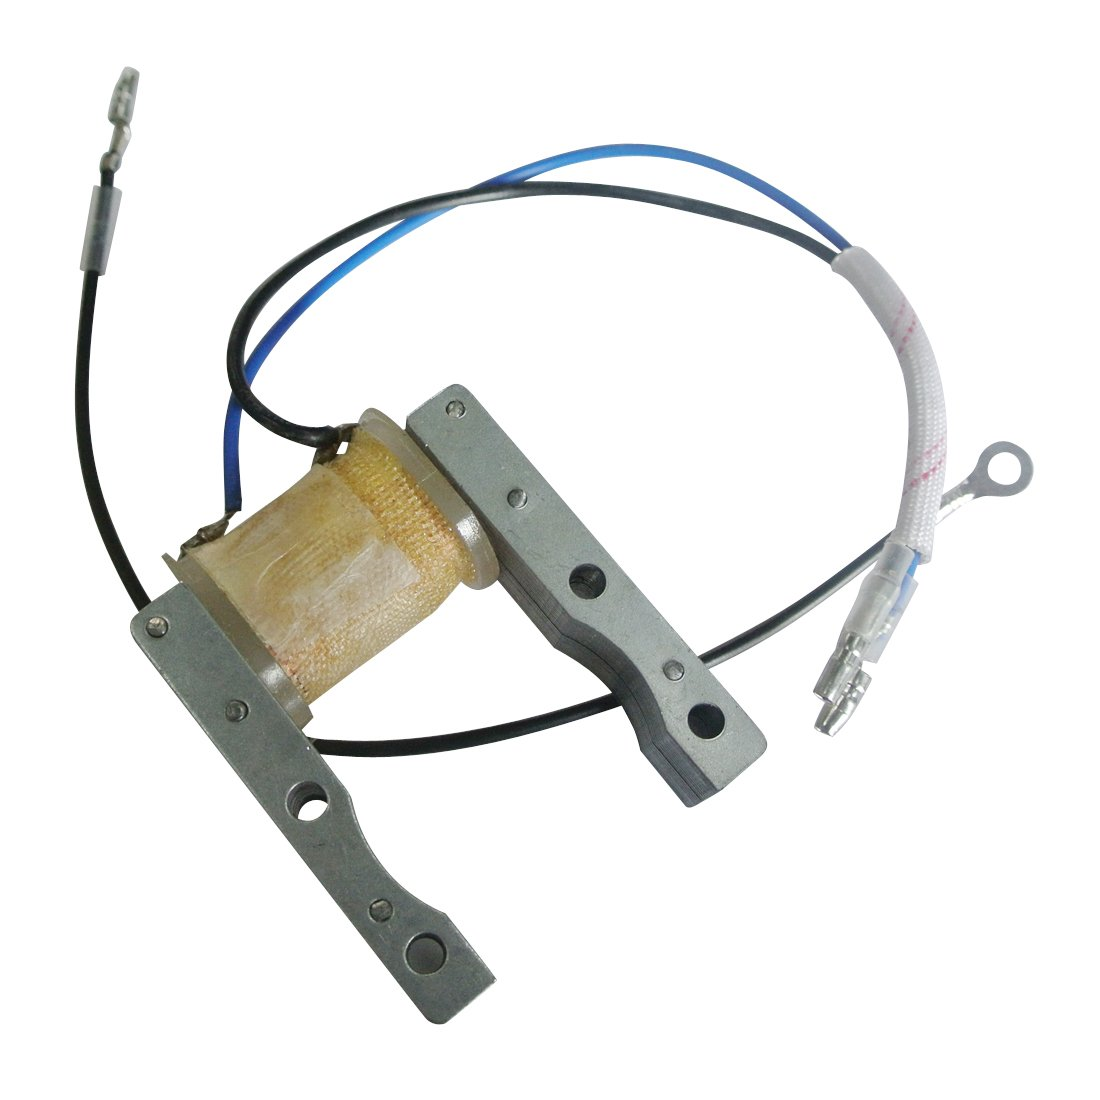 JRL Engine Motor Kit For 2-Stroke 80Cc Motorized Bicycle Kill Switch Button